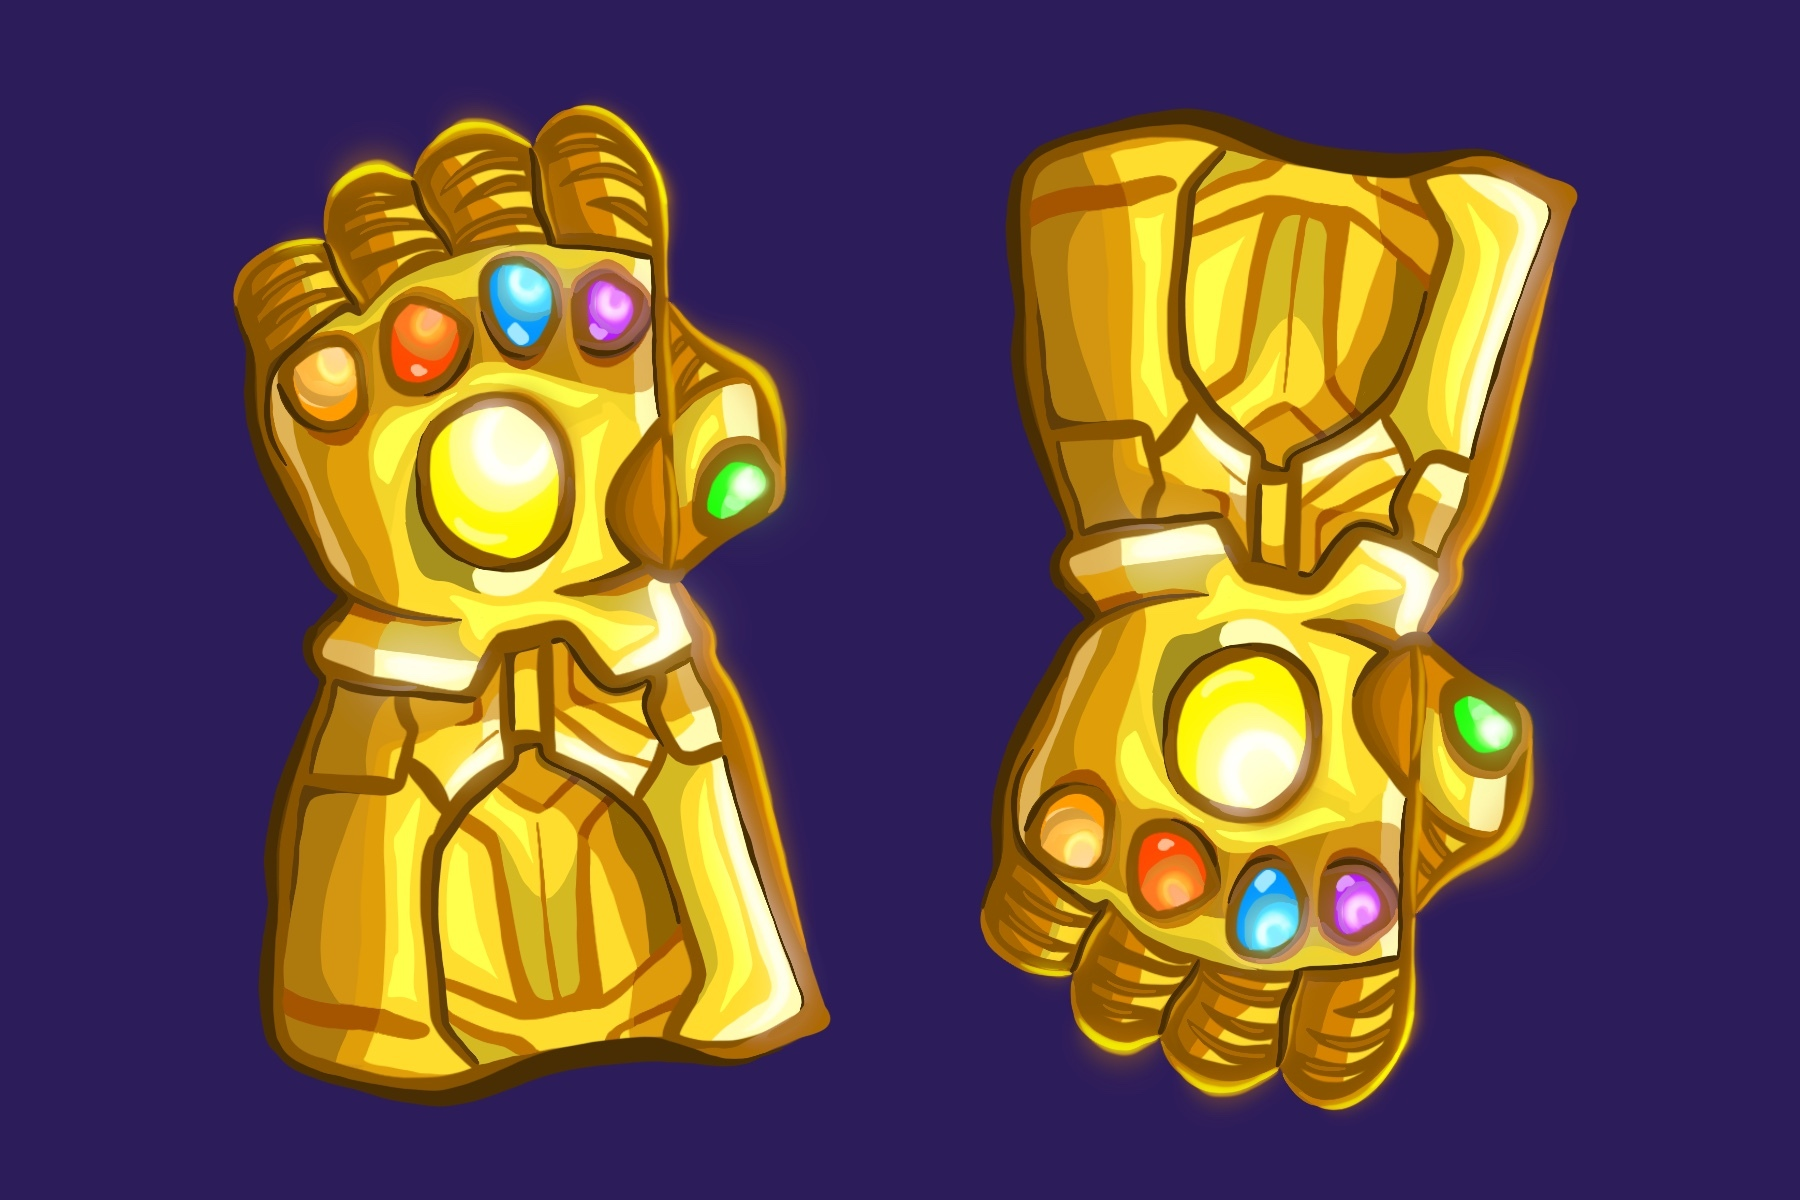 Thanos' glove from Infinity War, illustrated by Shelly Freund